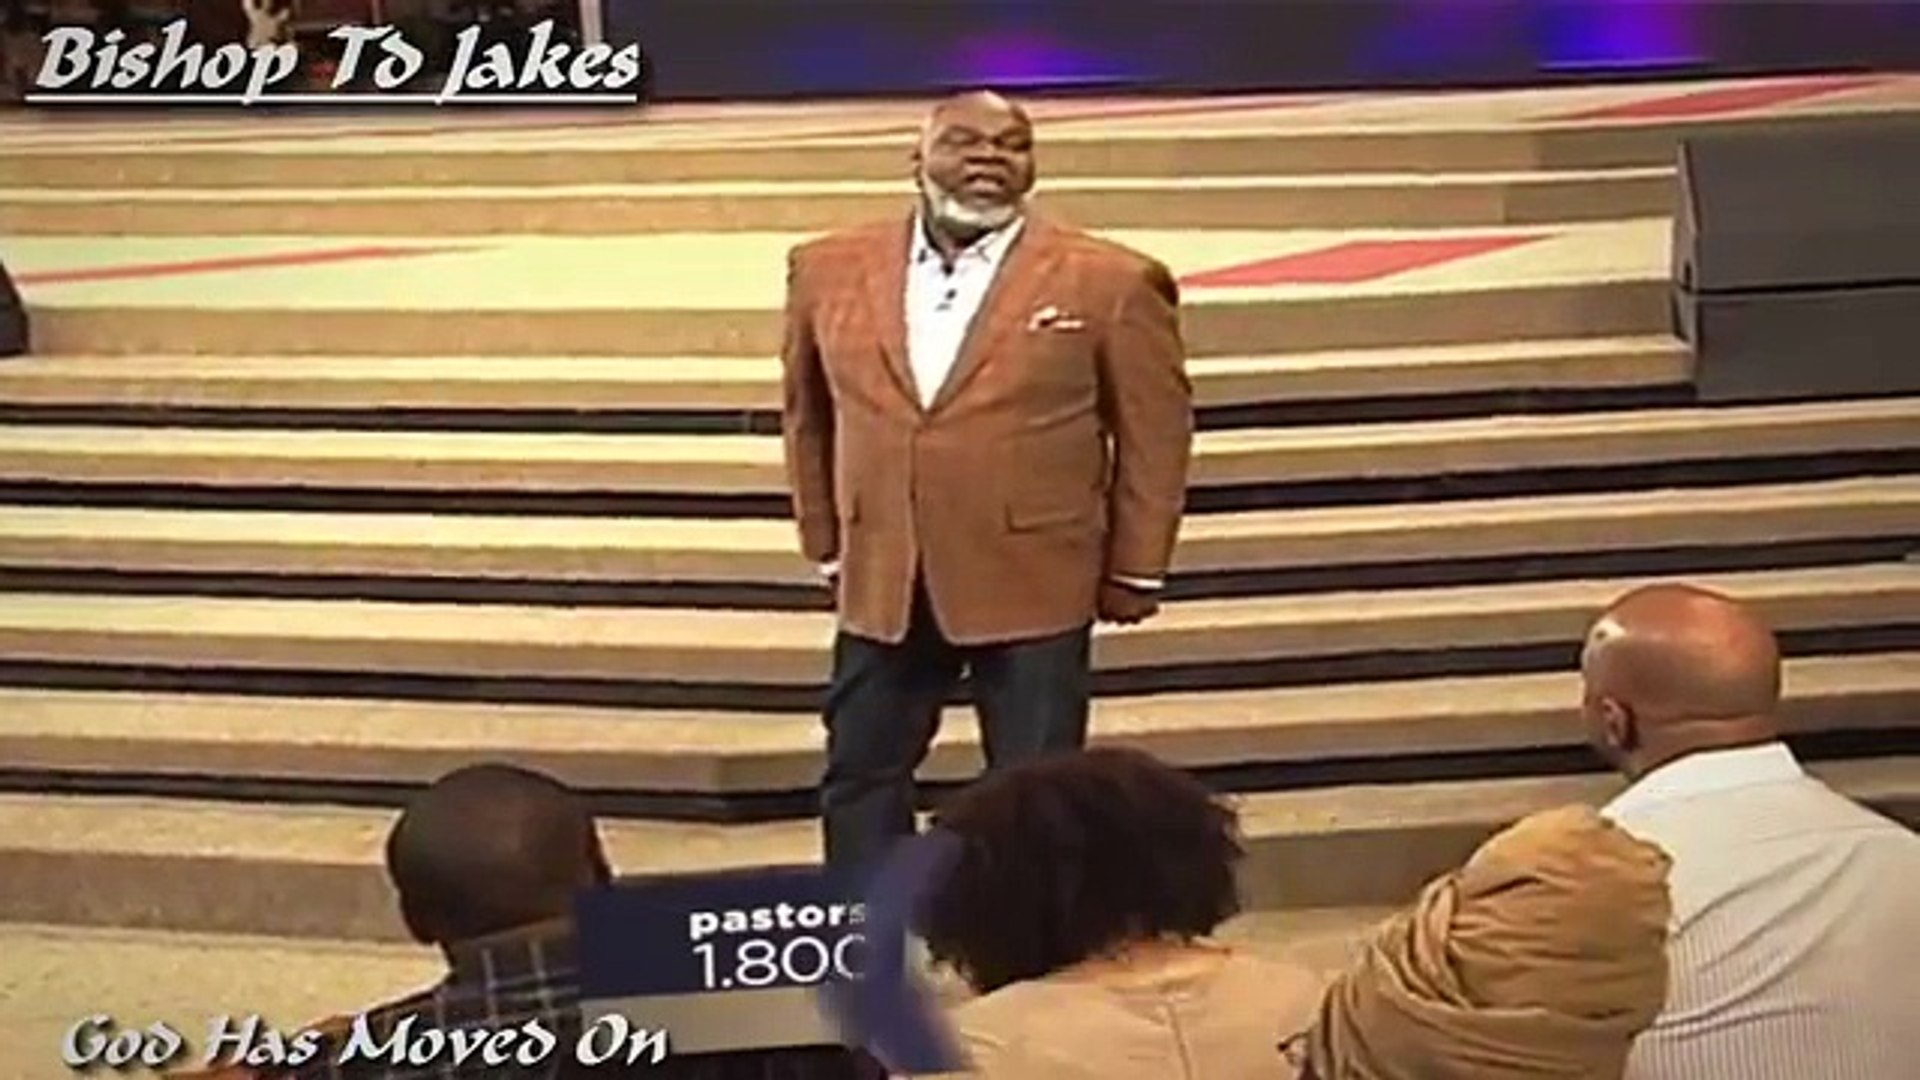 [Bishop TD Jakes Sermon 2016] - God Has Moved On  Sunday, March 29, 2016-  NEW SERMON